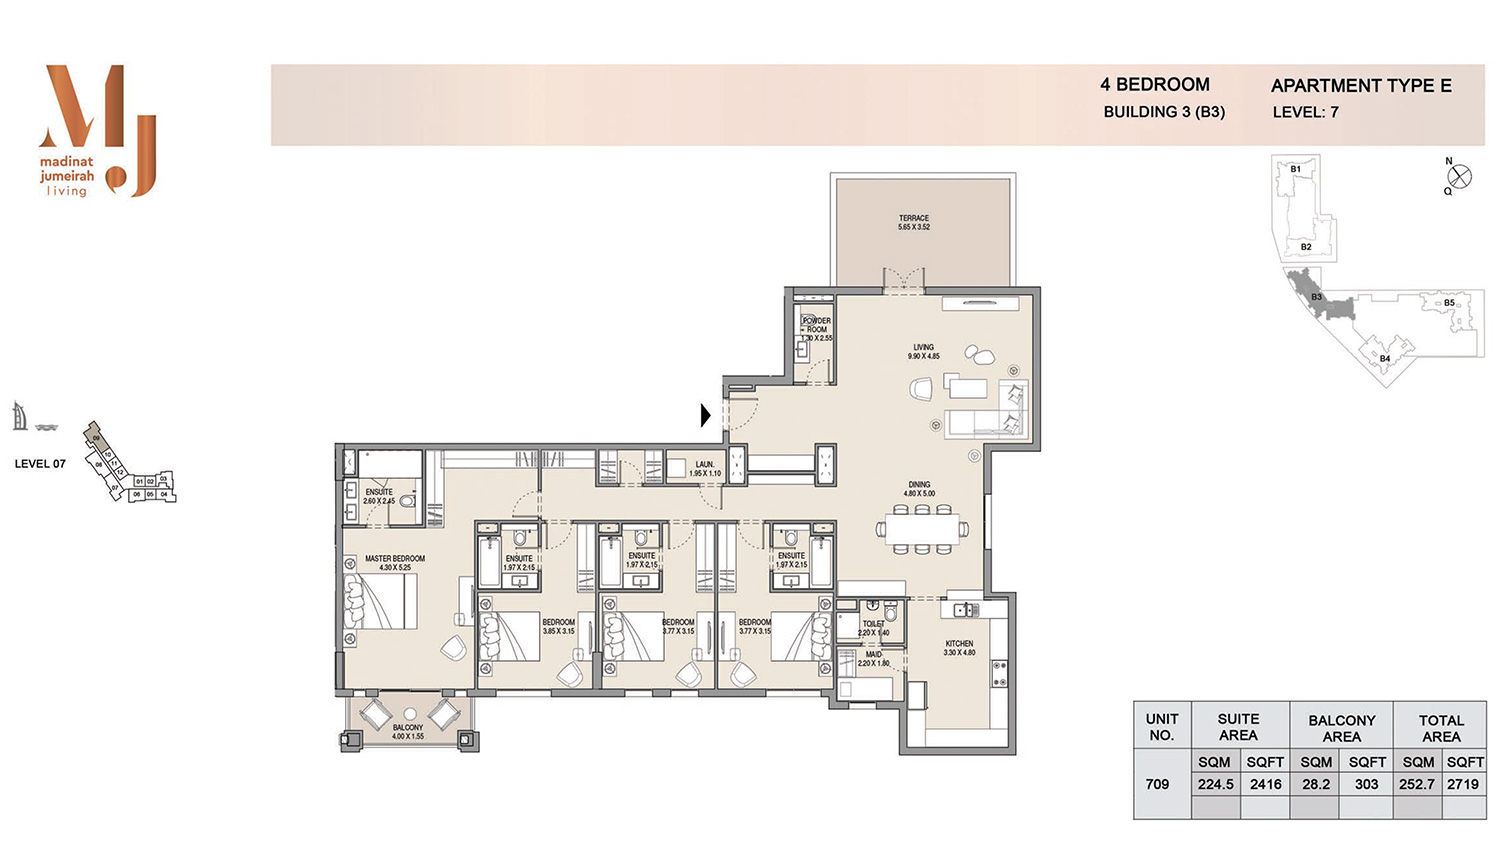 Building3 4 Bedroom, Type E, Levels 7, Size 2719 sq.ft